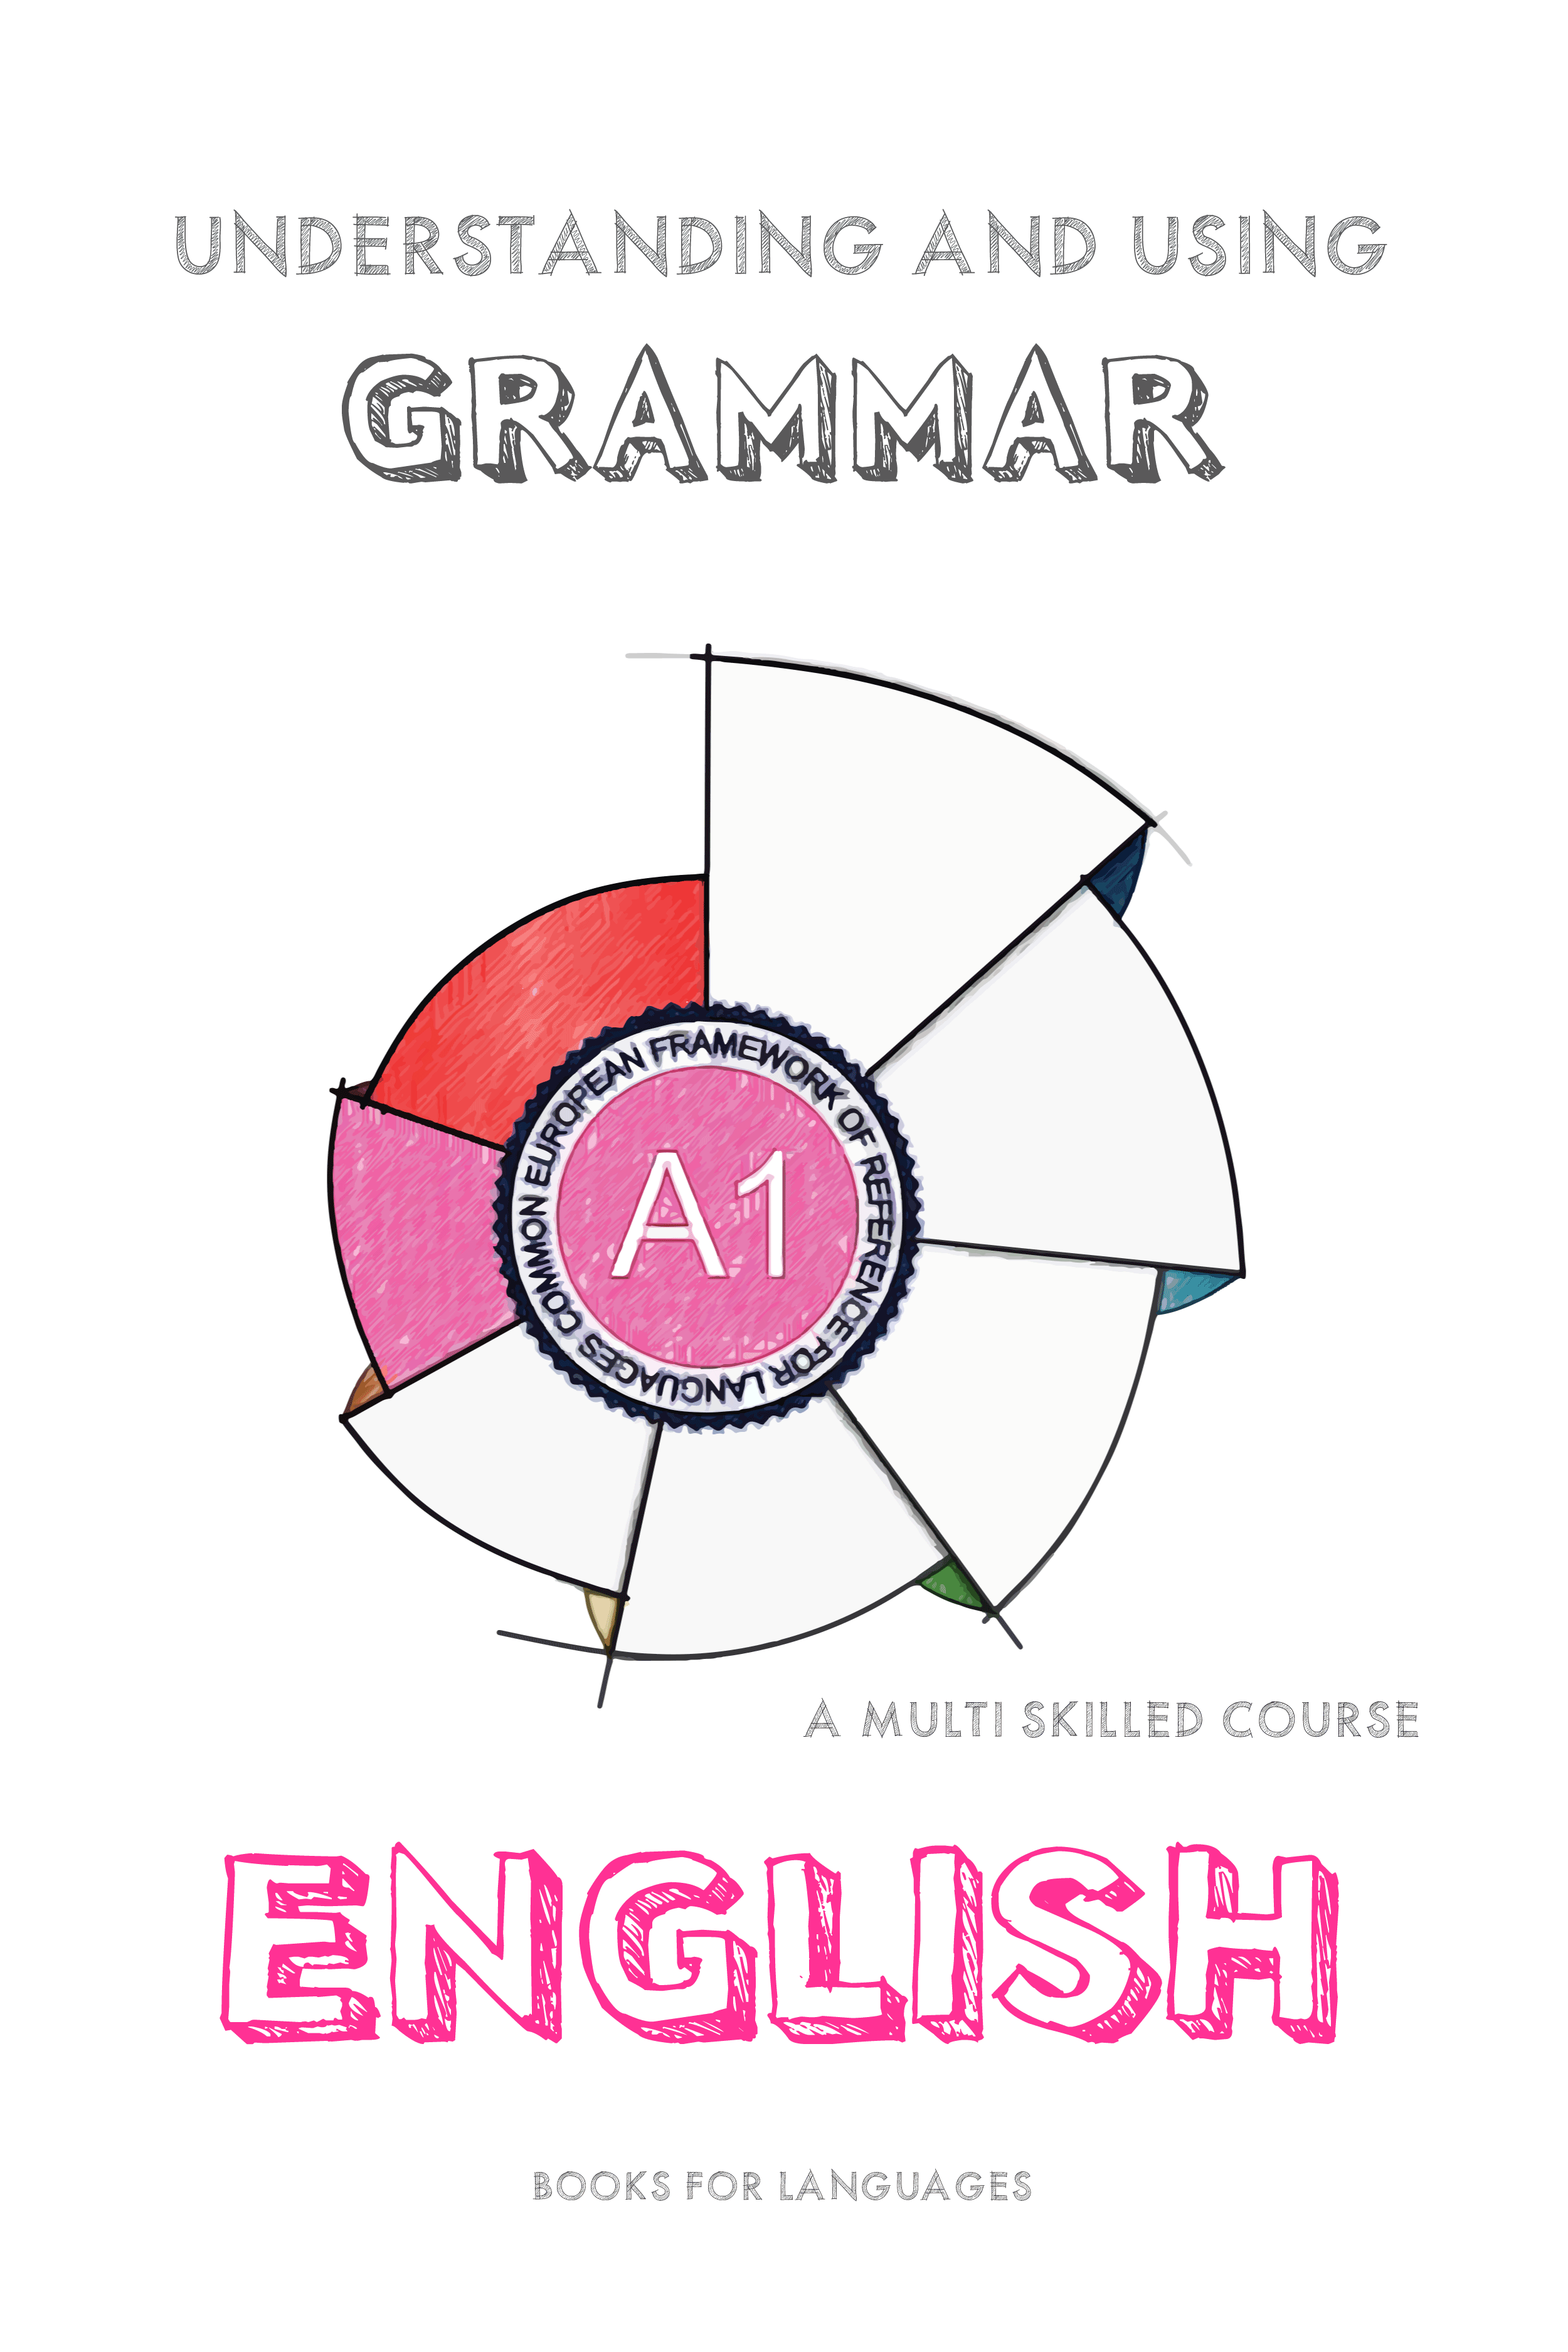 Cover image for English Course A1 Level